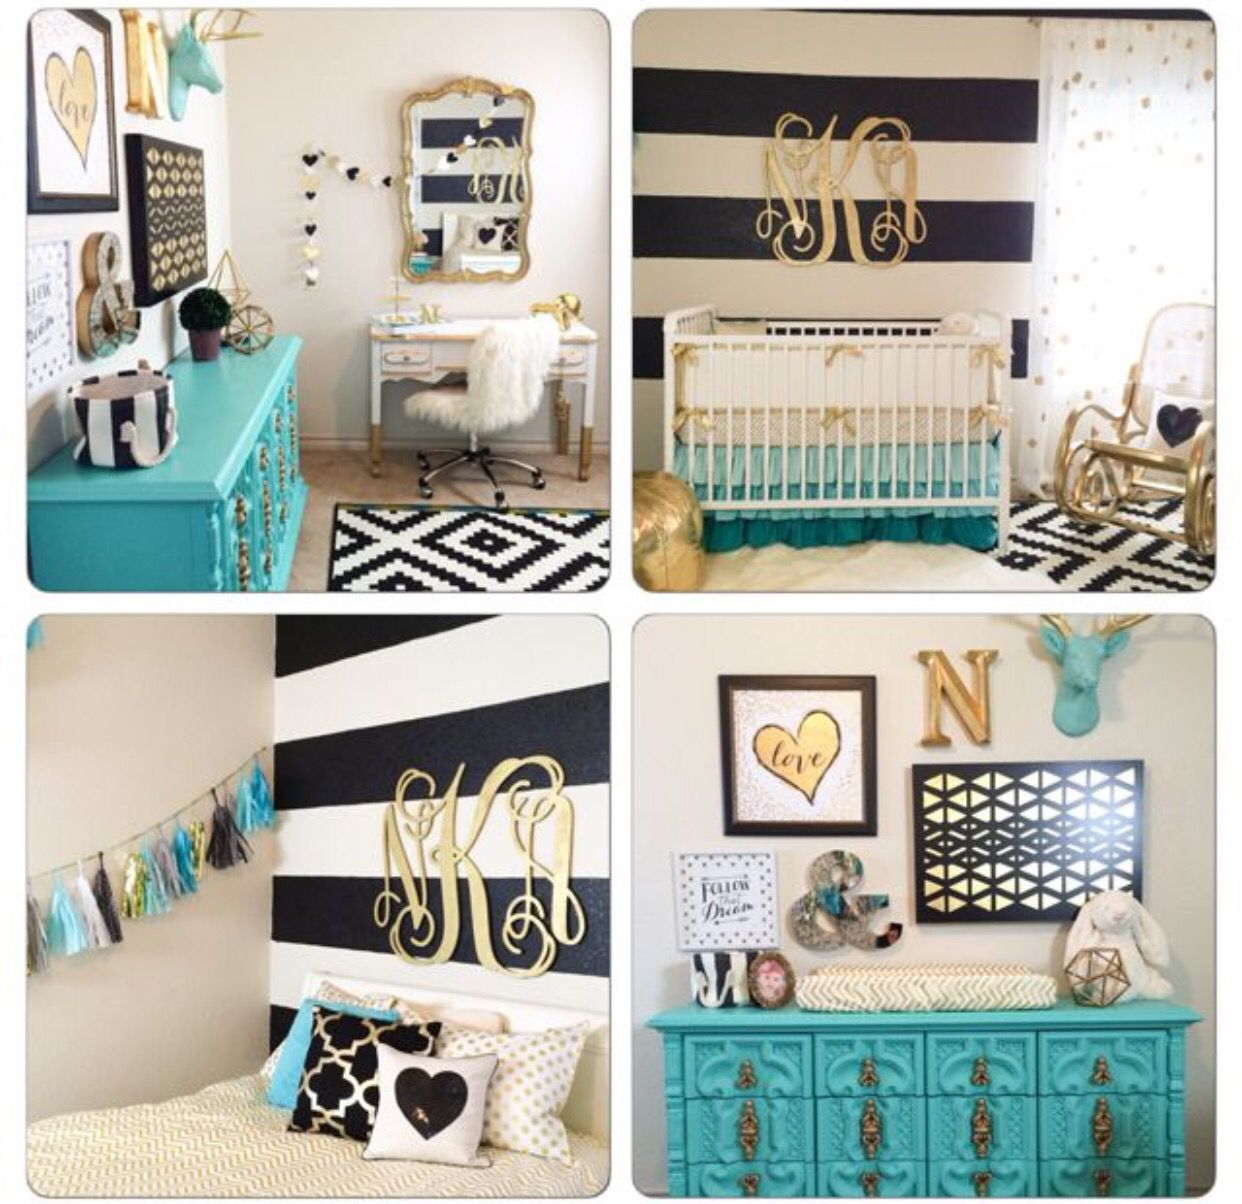 Black and white and teal bedroom - Explore Teal Bedroom Decor Black Gold Bedroom And More